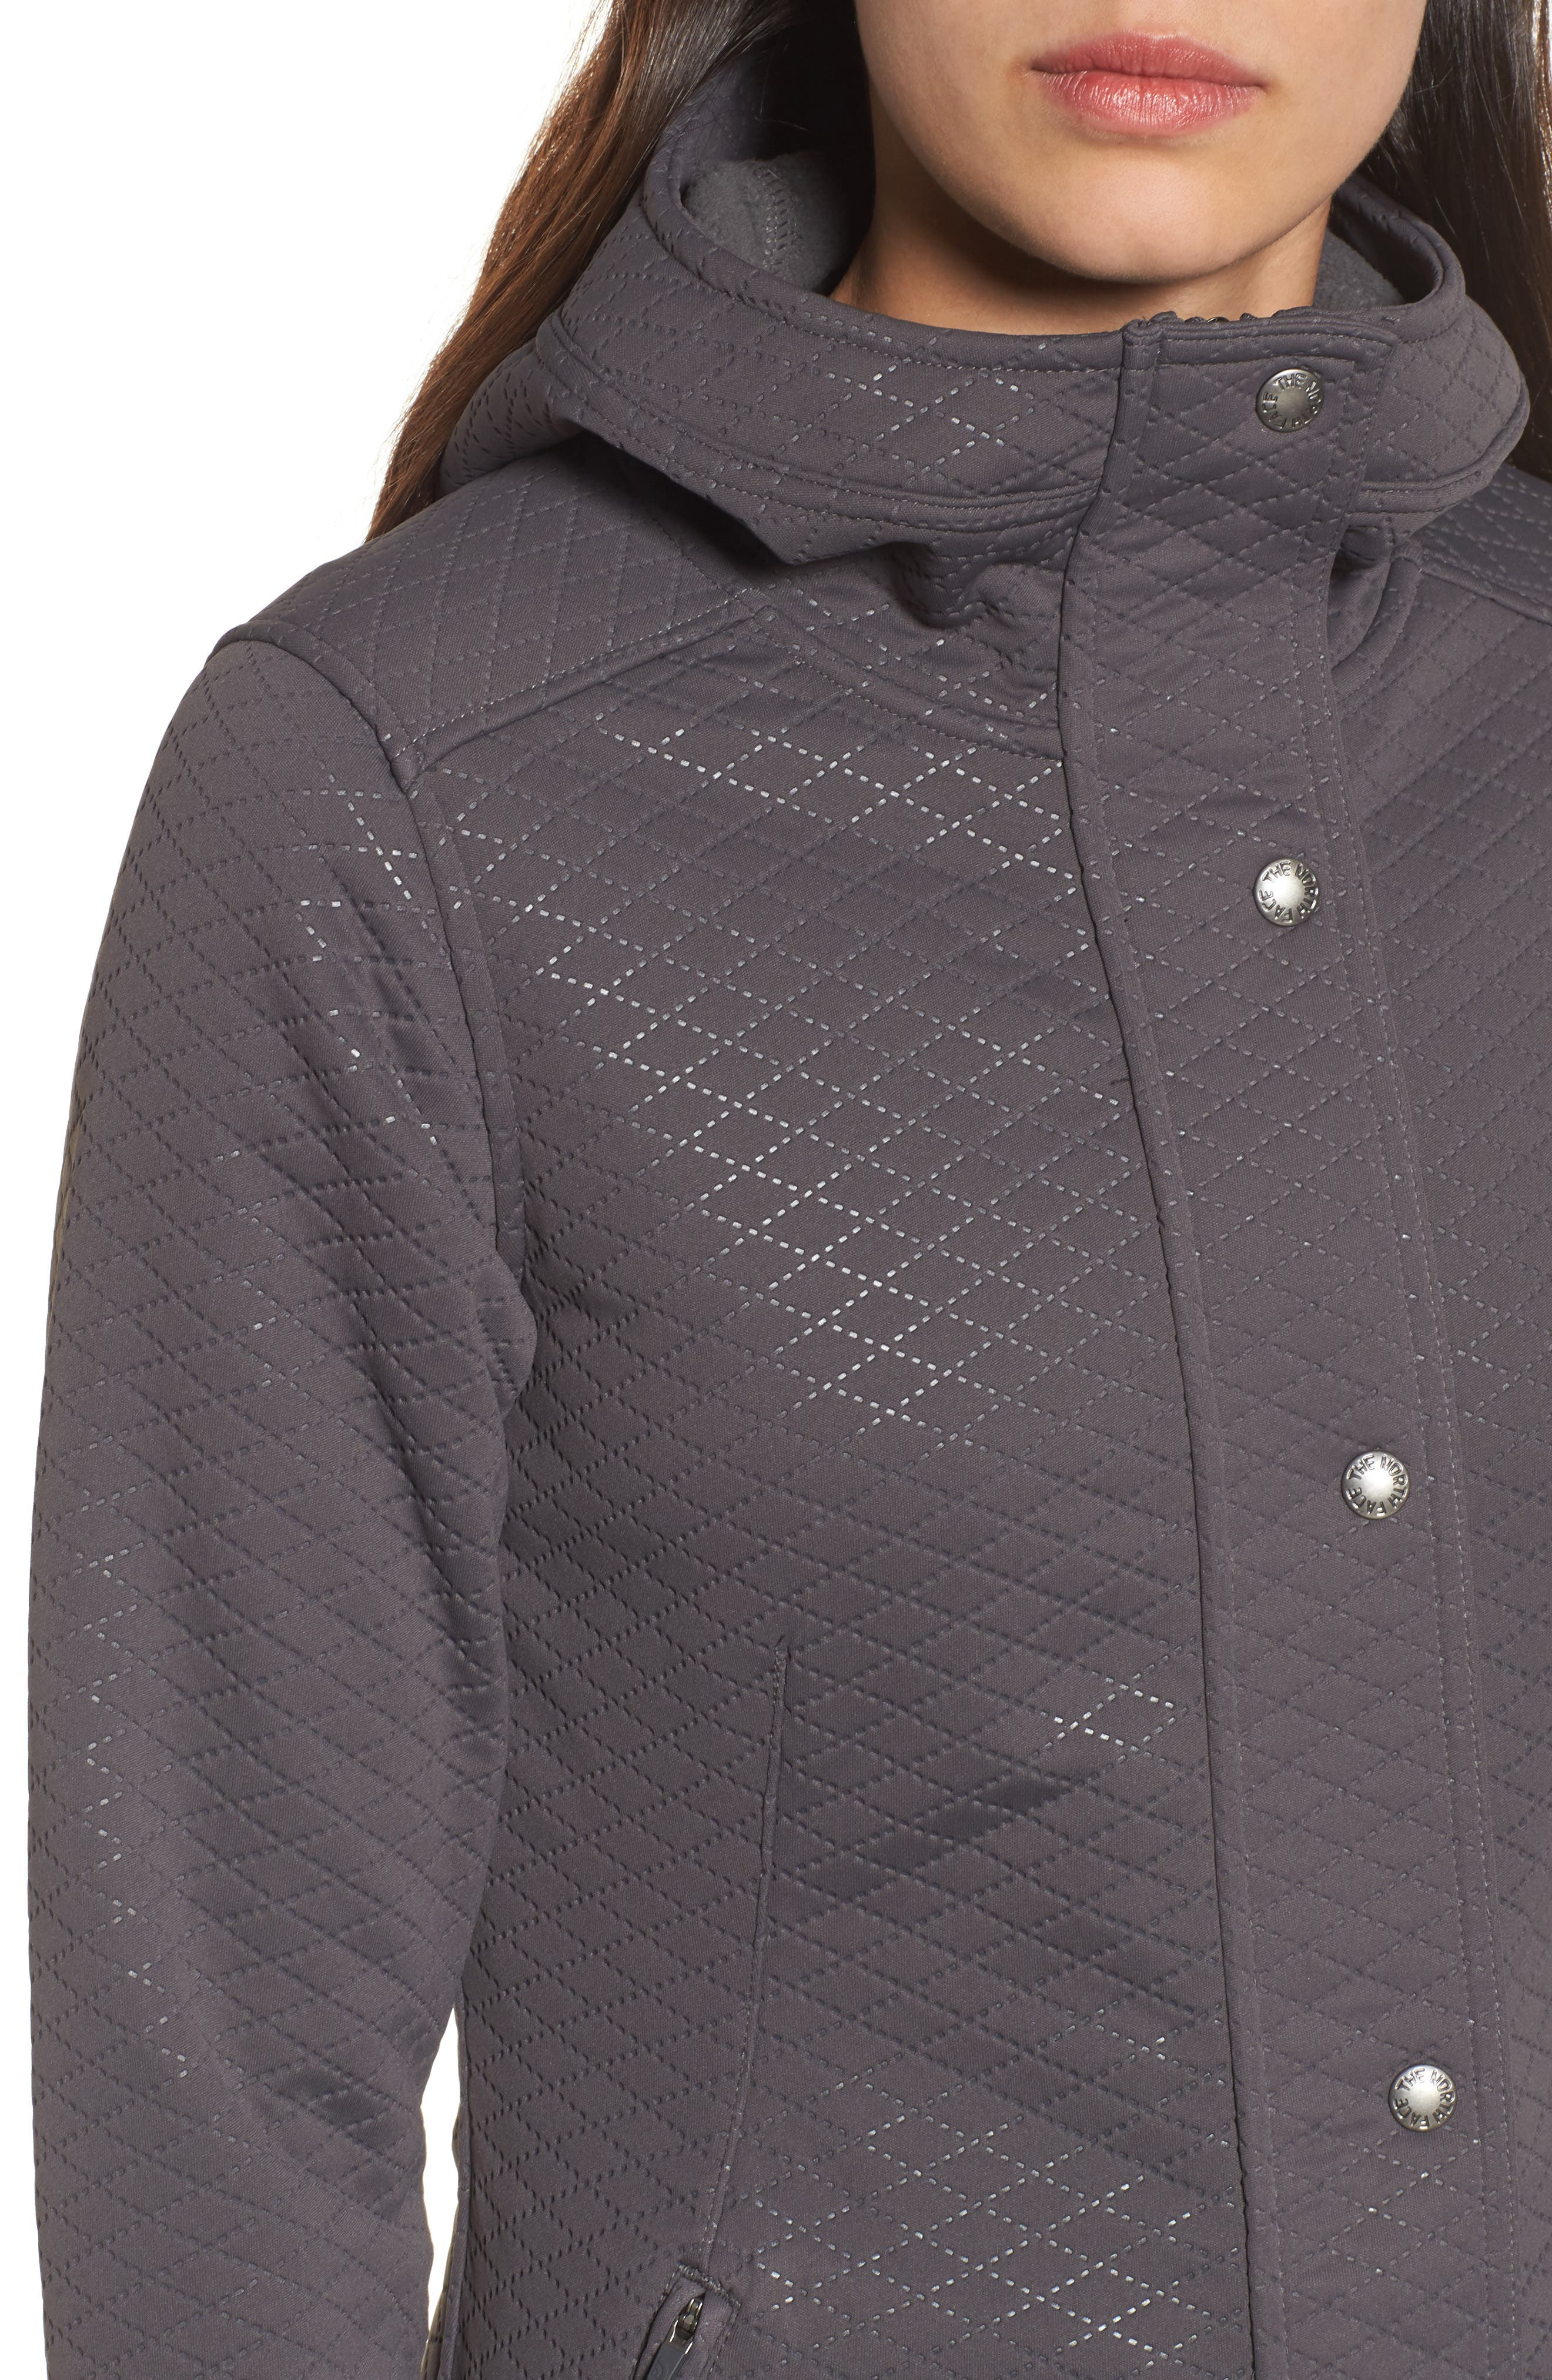 Recover-Up Jacket,                             Alternate thumbnail 4, color,                             021